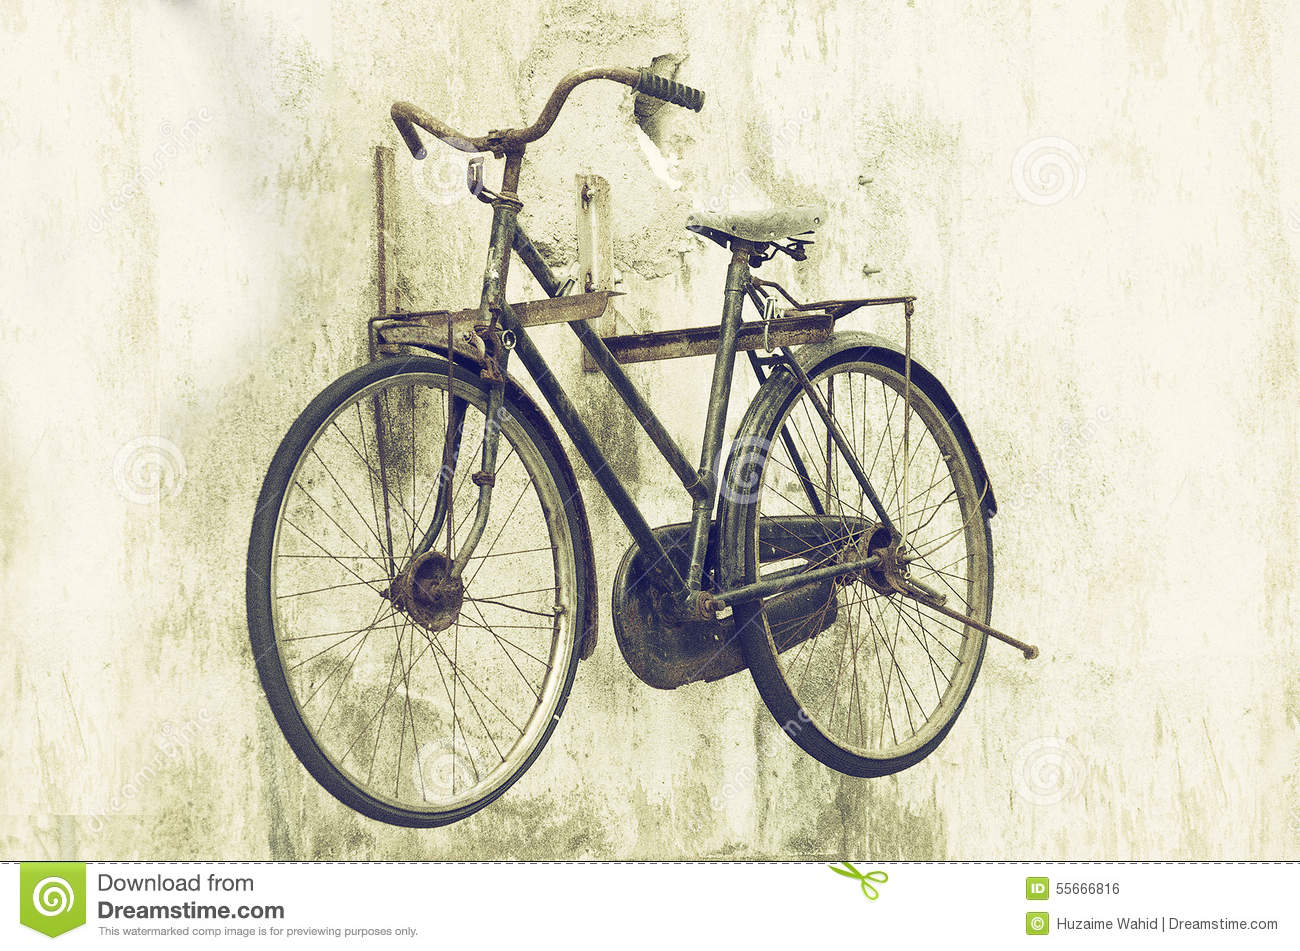 Greatest Old bicycle stock photo. Image of heart, image, cultural - 55666816 YL56